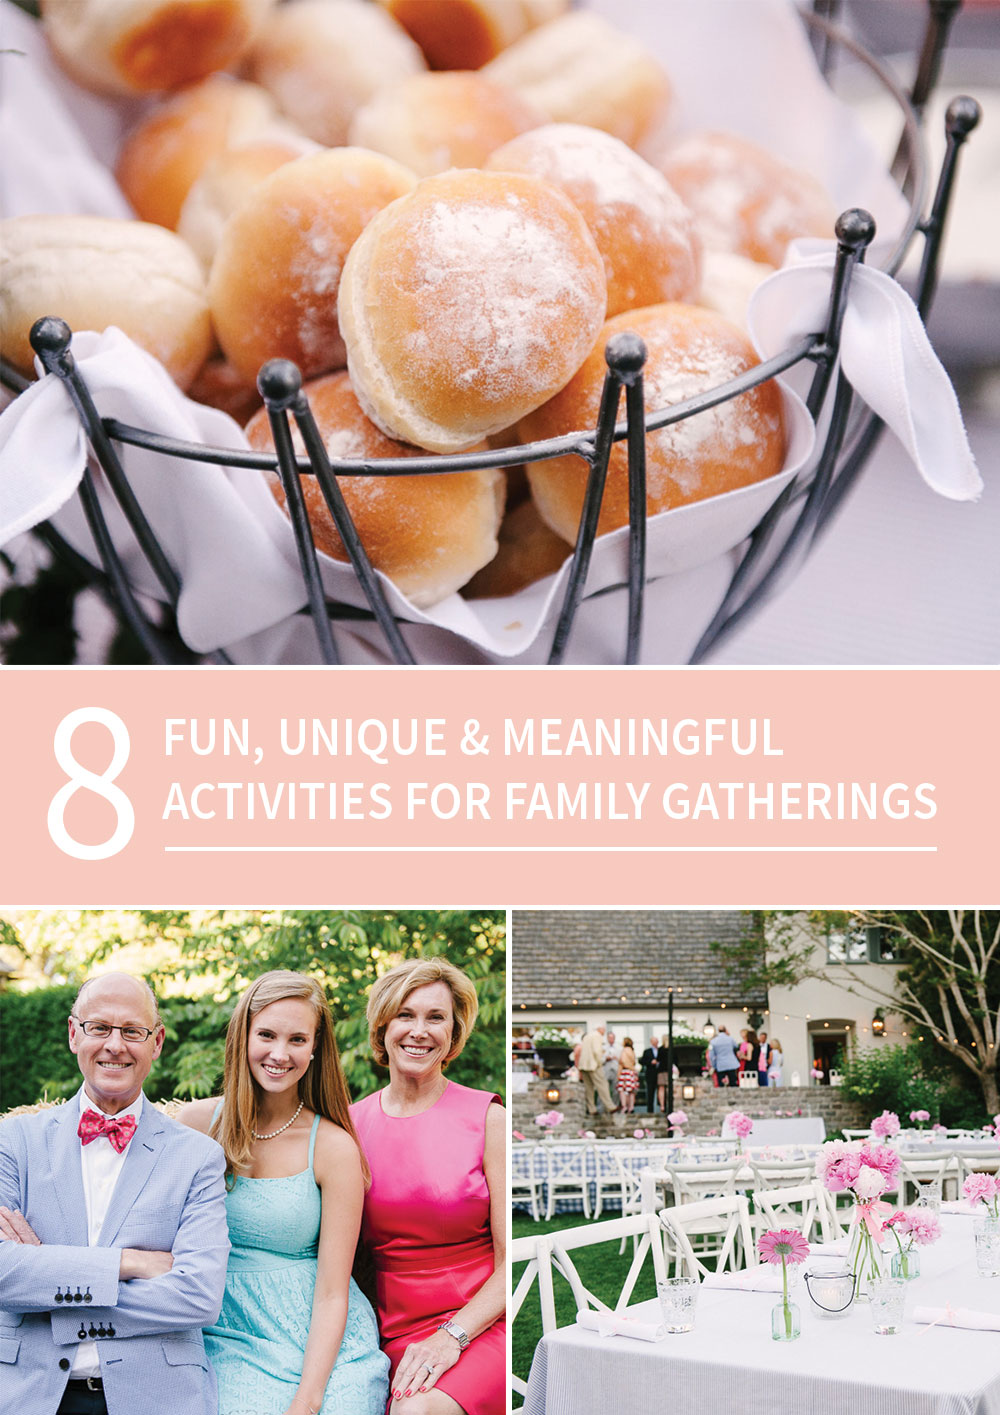 8 Unique and Meaningful Activities for Family Gatherings. To help you squeeze more quality and connection into your events. Perfect if you have any summer gatherings coming up!